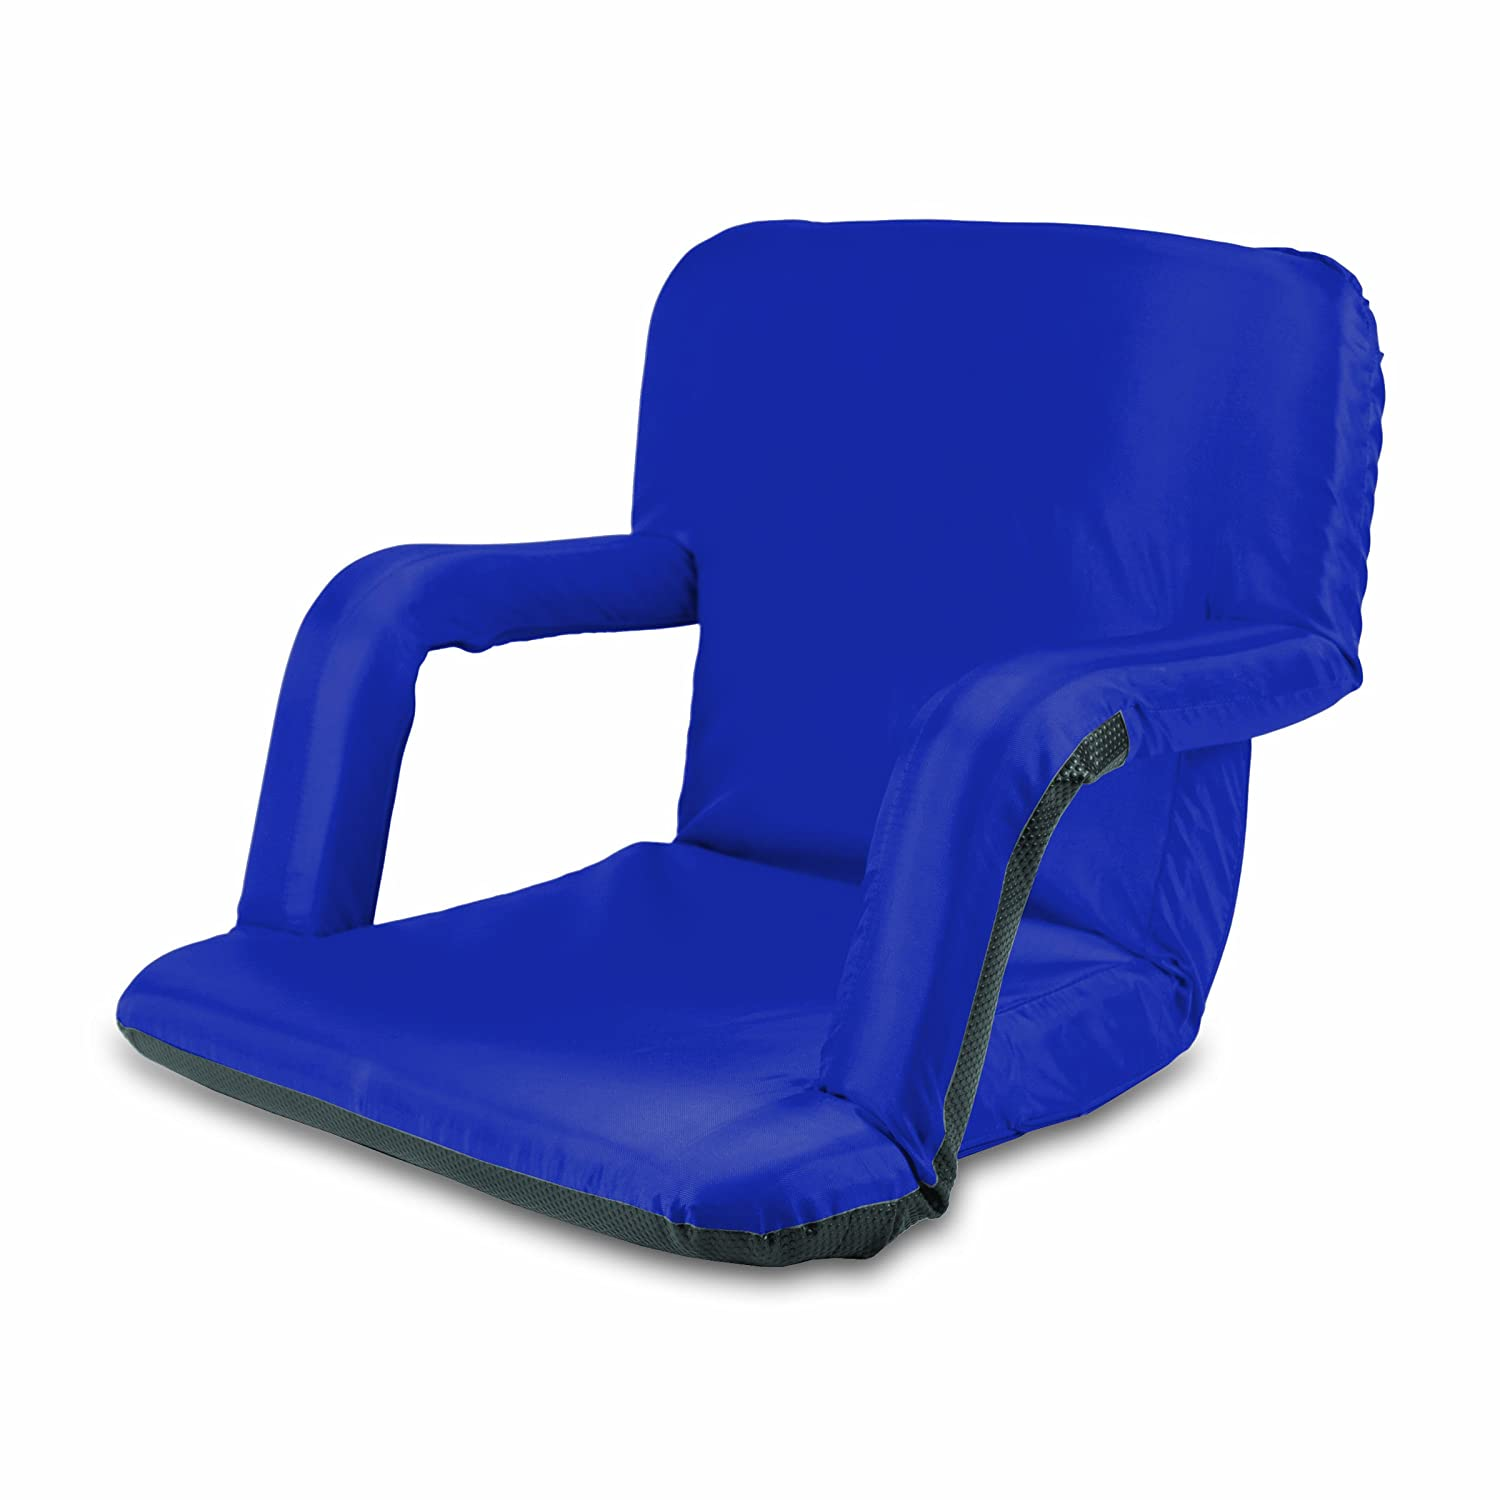 Stadium Chairs Best Travel Stadium Seats With Padded Cushions 2016 2017